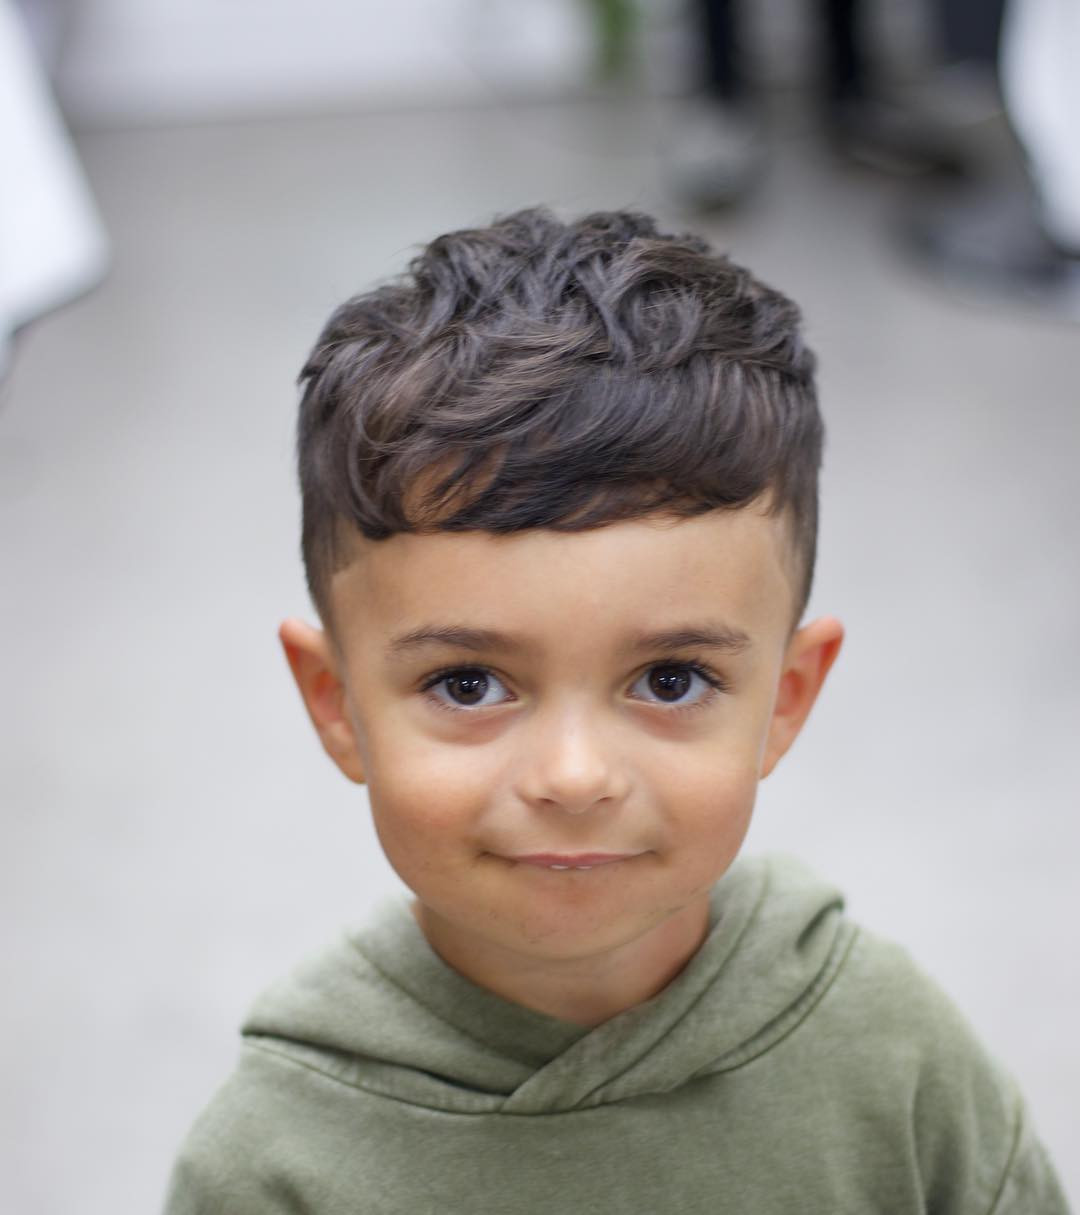 Best ideas about Little Boys Hair Cut . Save or Pin Popular Haircuts For Little Boys 2018 Now.